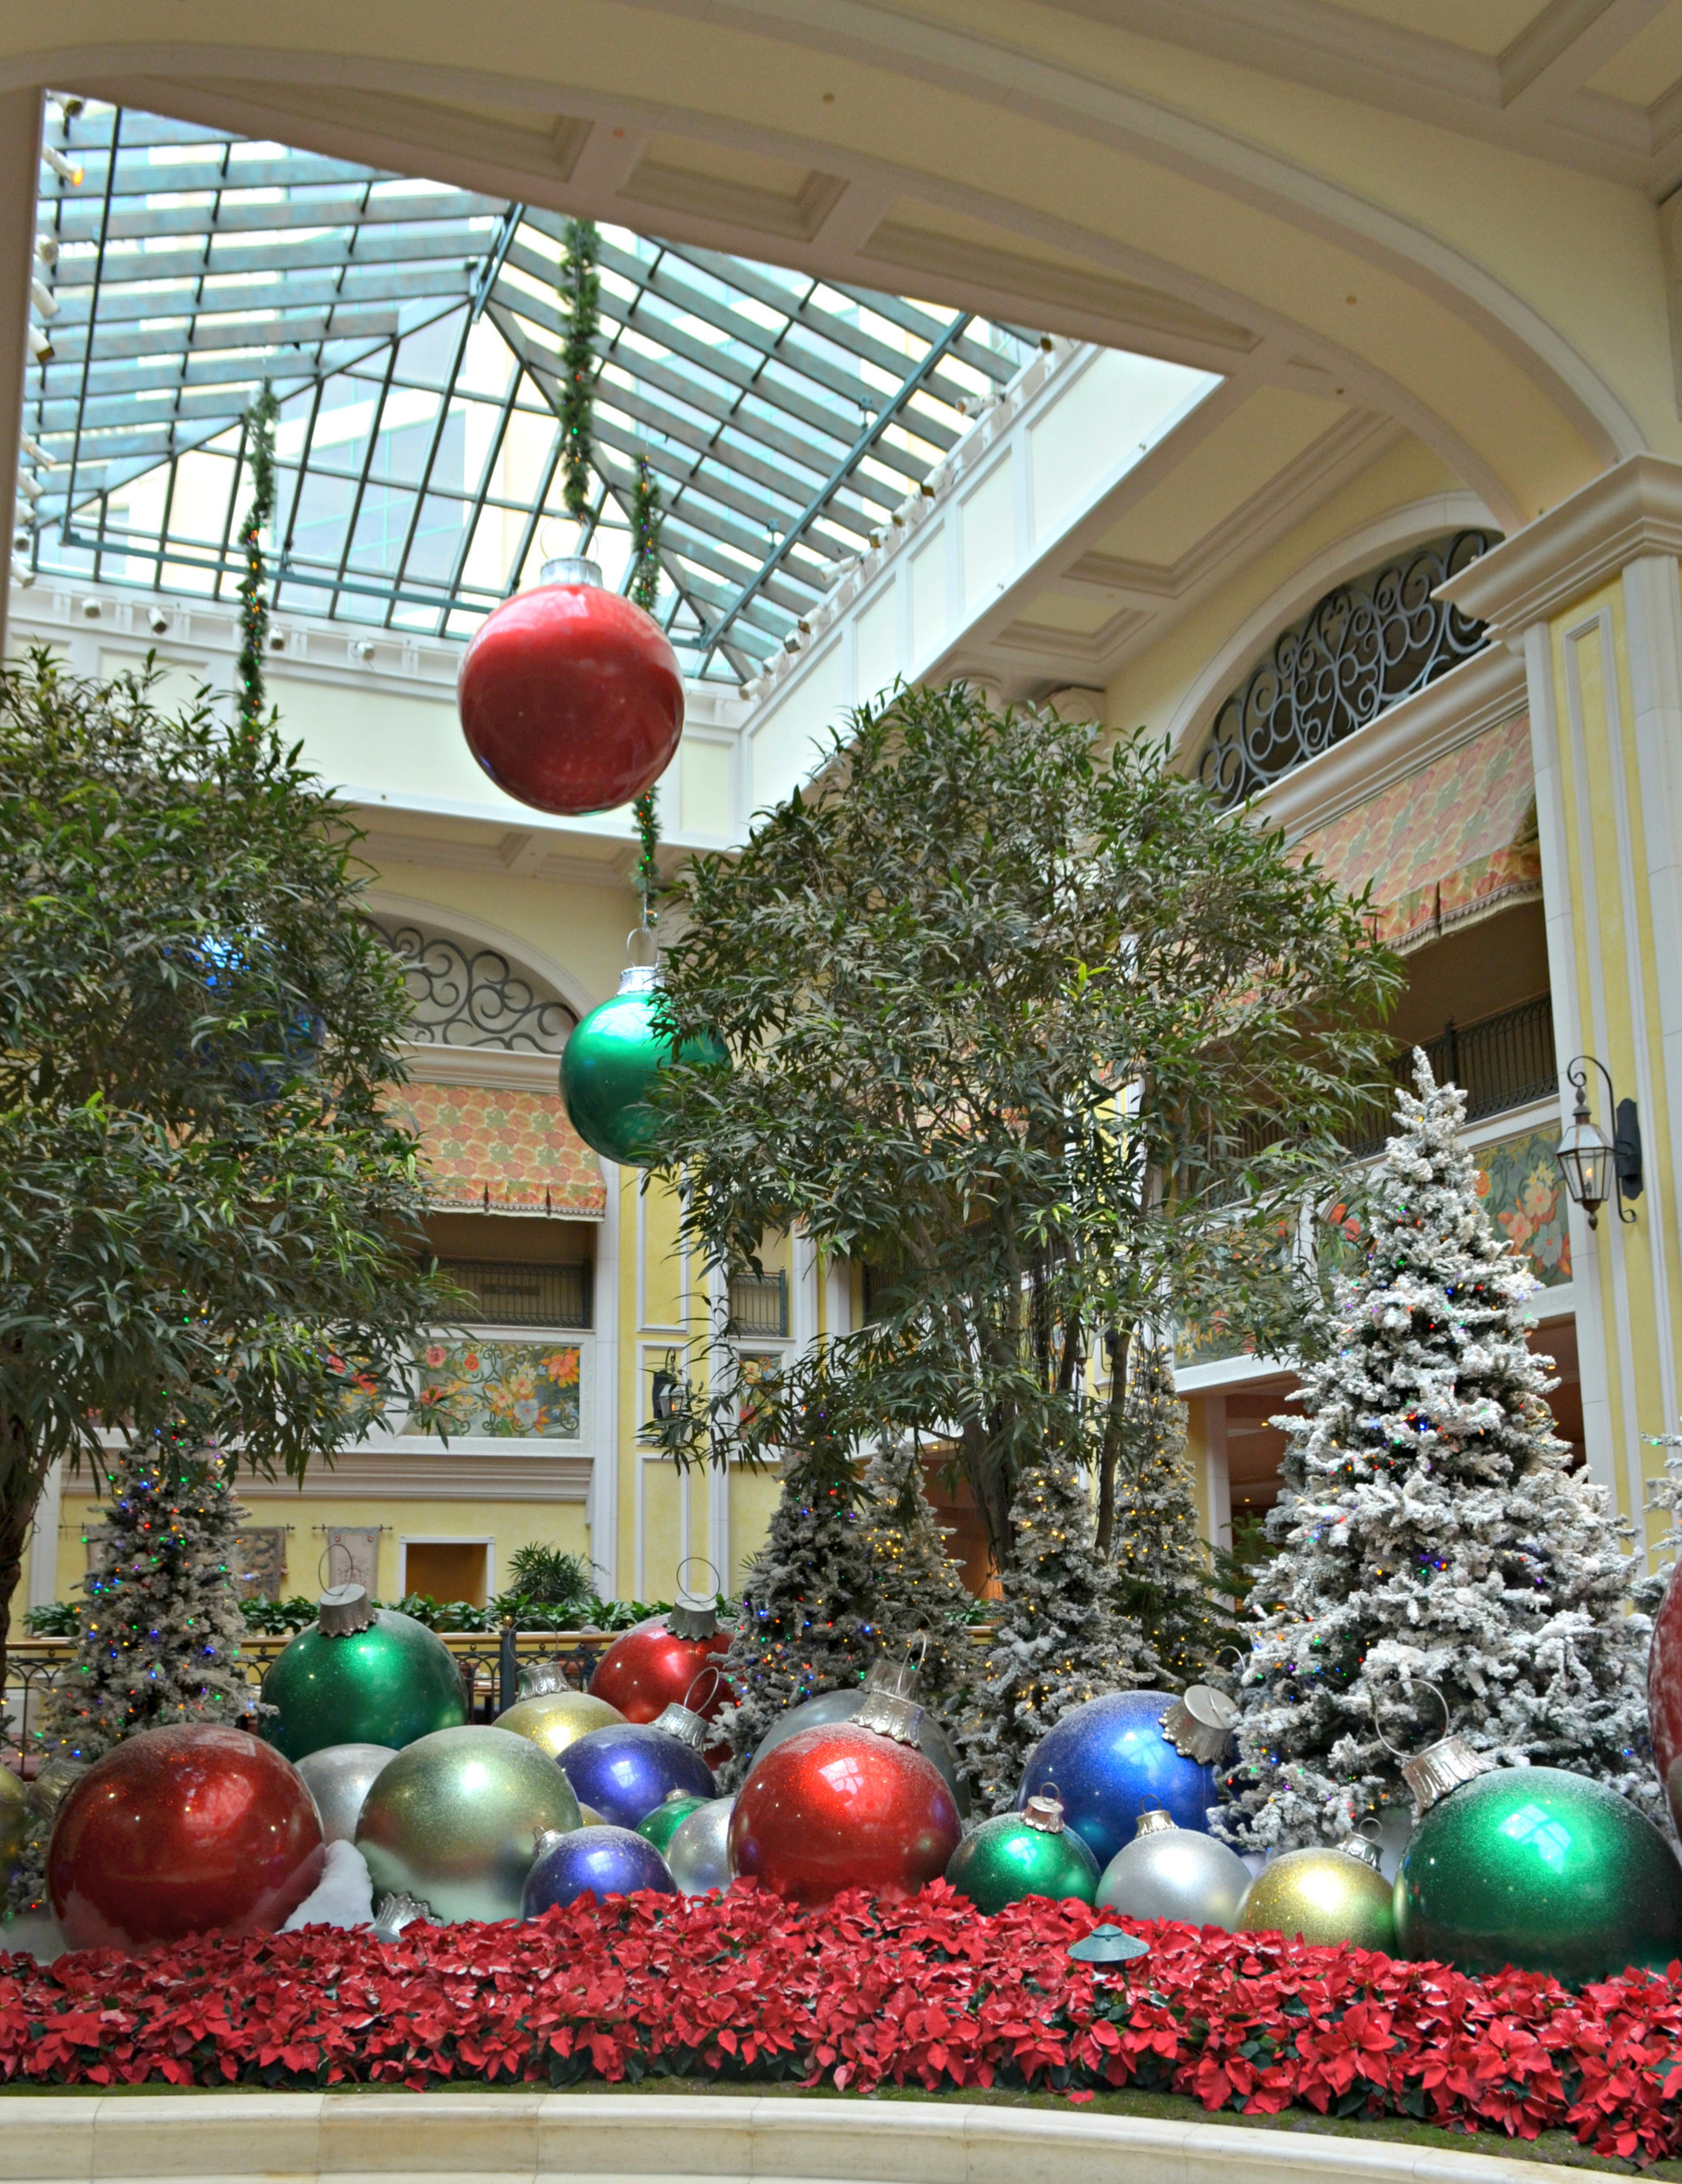 Celebrate the season with festive shows, world-class shopping and elaborate holiday decorations at Beau Rivage on the Mississippi Gulf Coast.